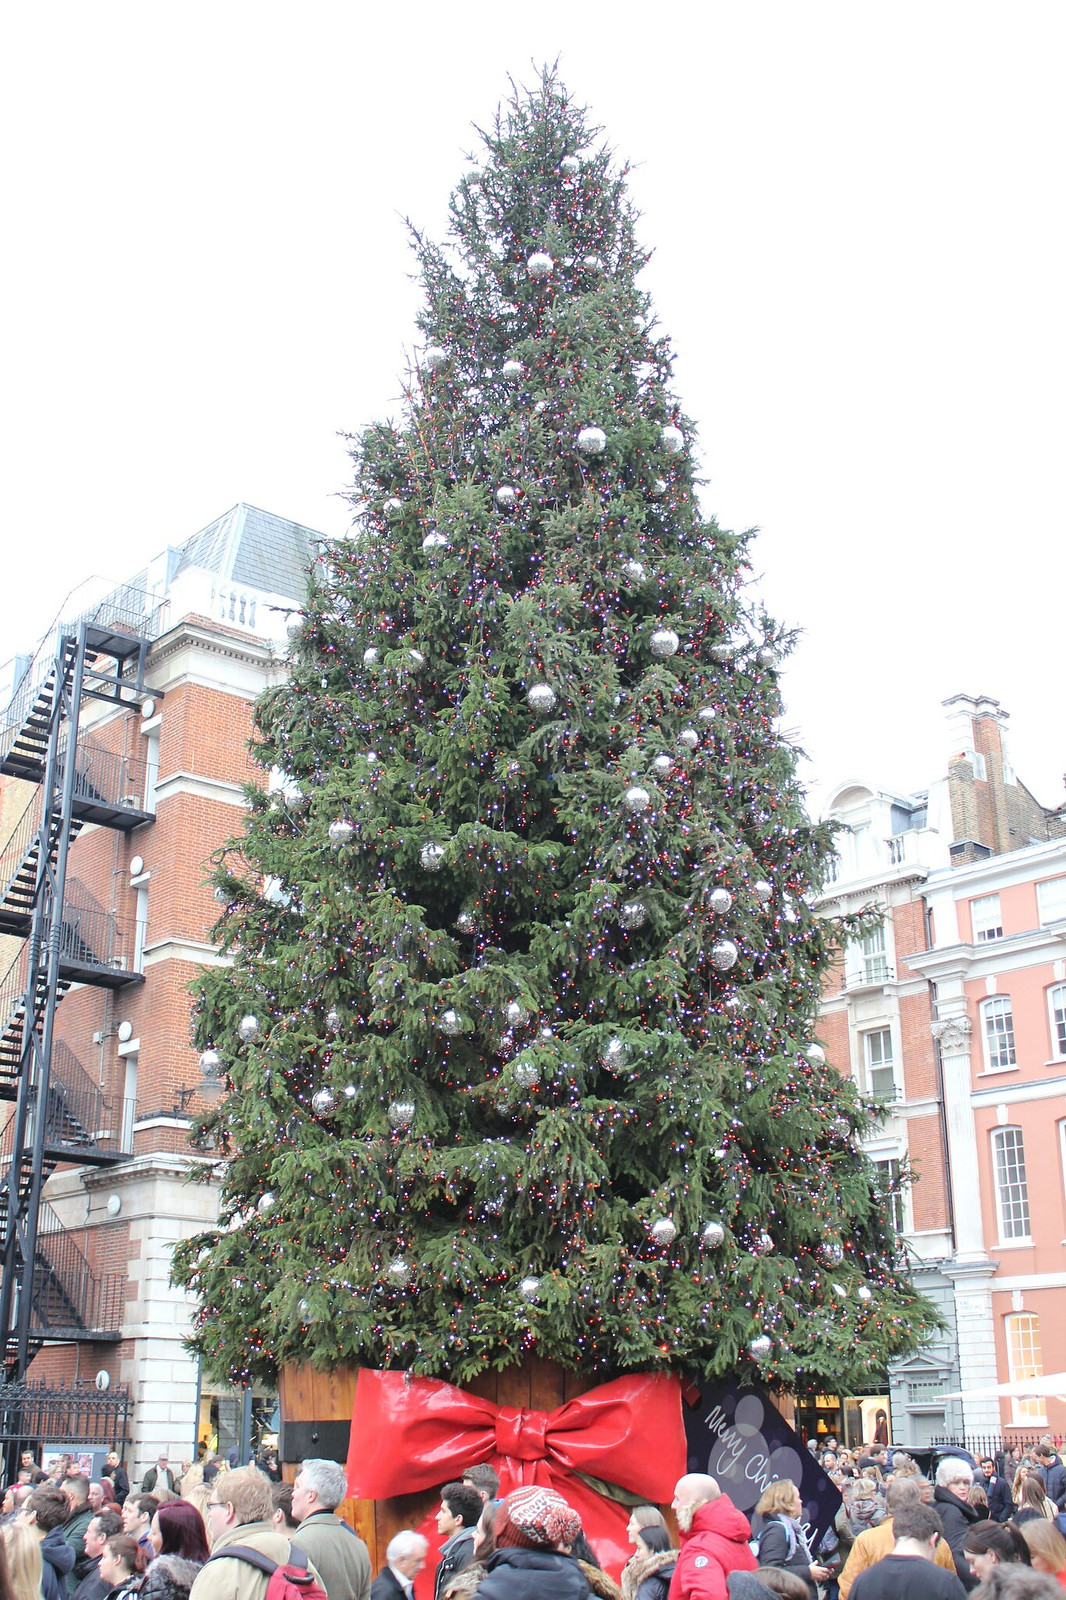 Christmas Time in London Town